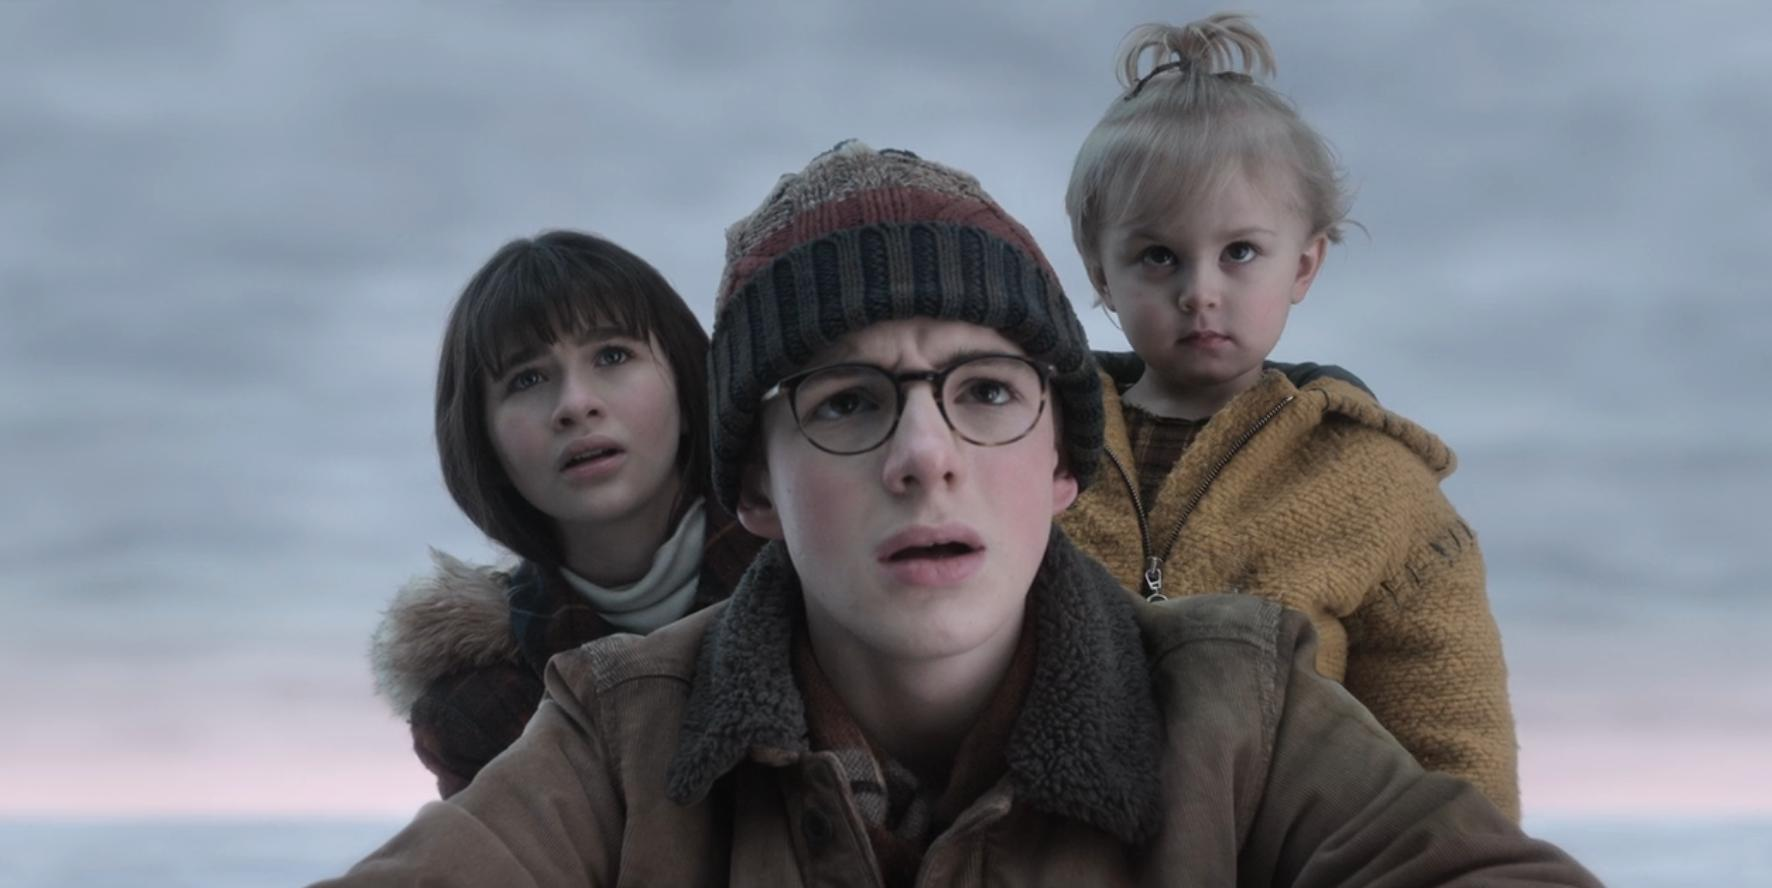 Malina Weissman, Louis Hynes, and Presley Smith as Violet, Klaus, and Sunny Baudelaire in A SERIES OF UNFORTUNATE EVENTS (2018)